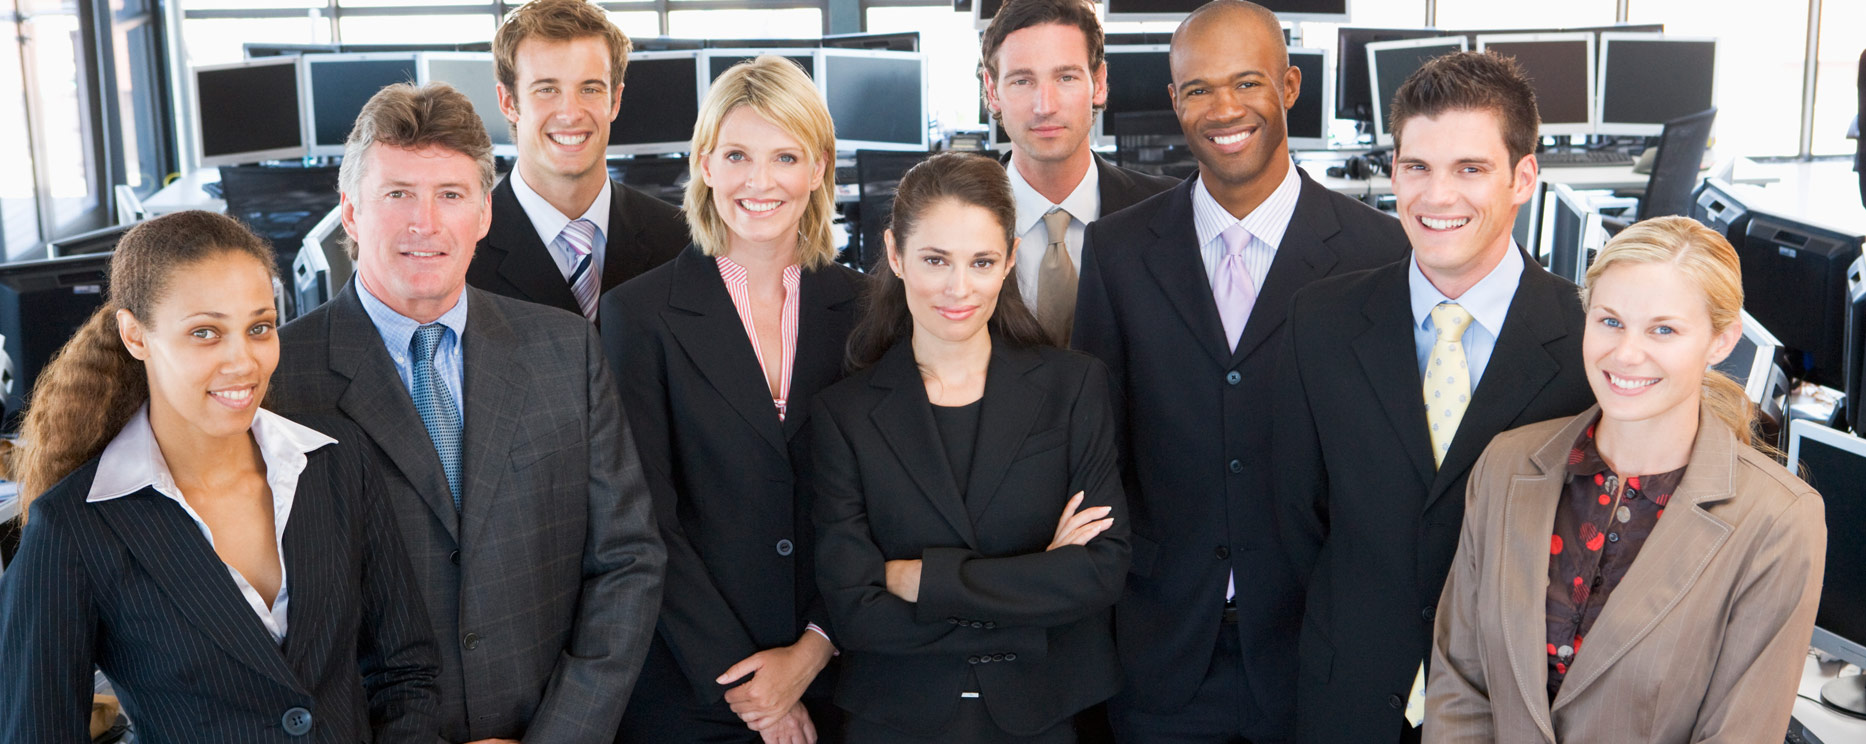 Pure Productive Services Careers